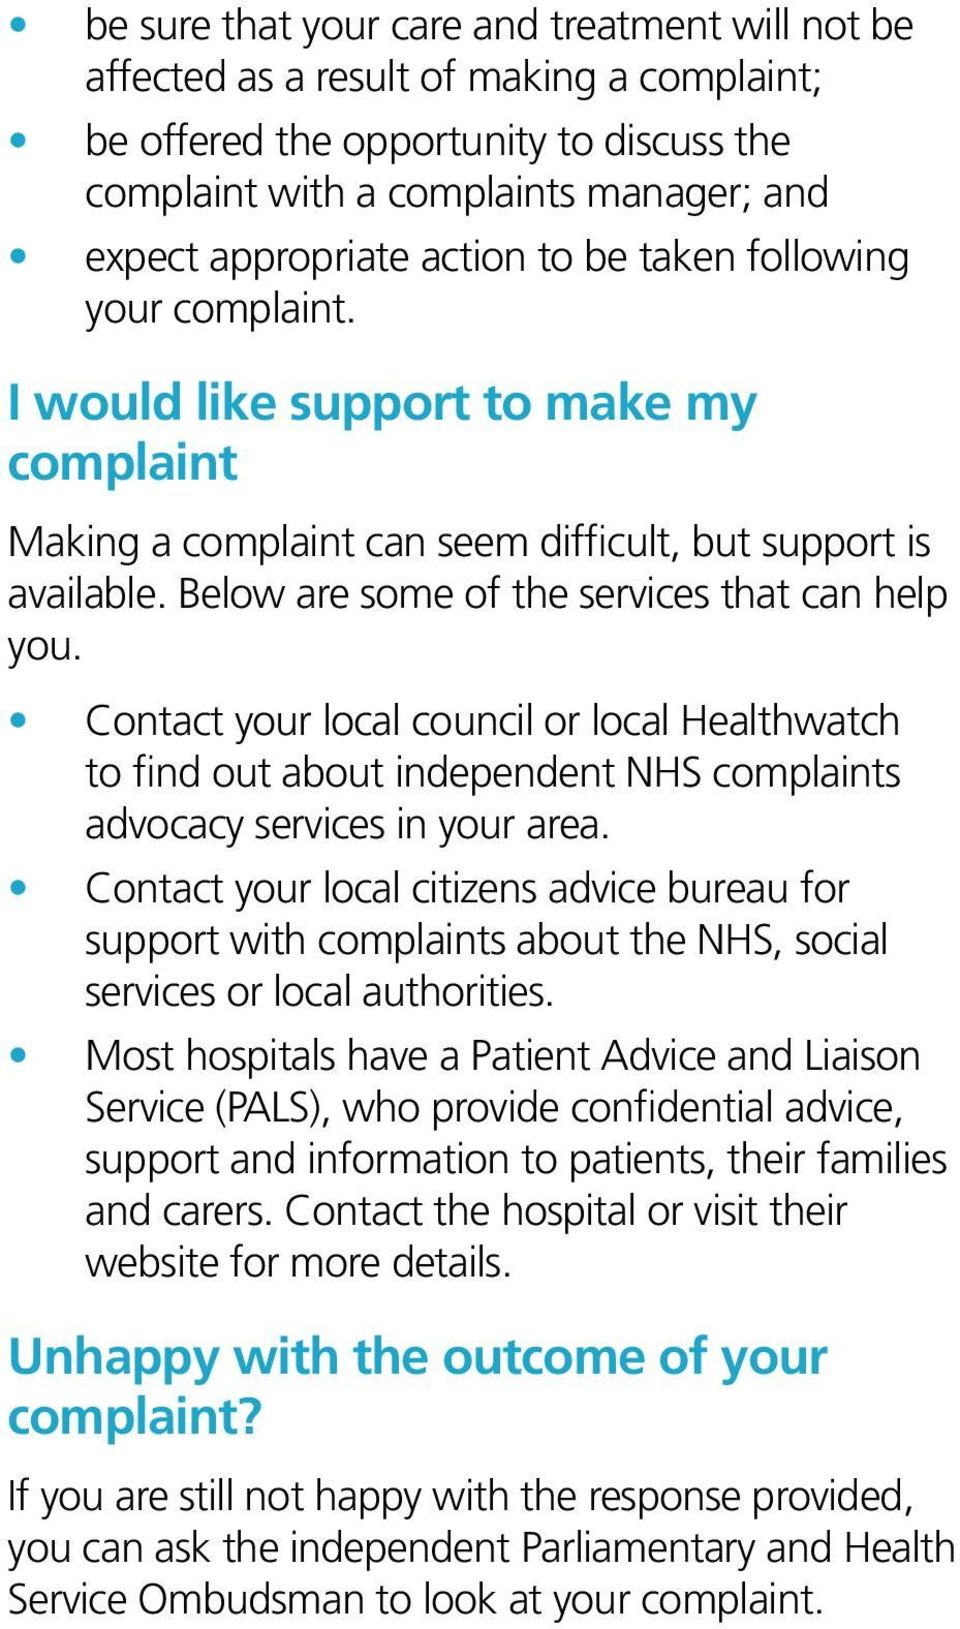 Below are some of the services that can help you. Contact your local council or local Healthwatch to find out about independent NHS complaints advocacy services in your area.